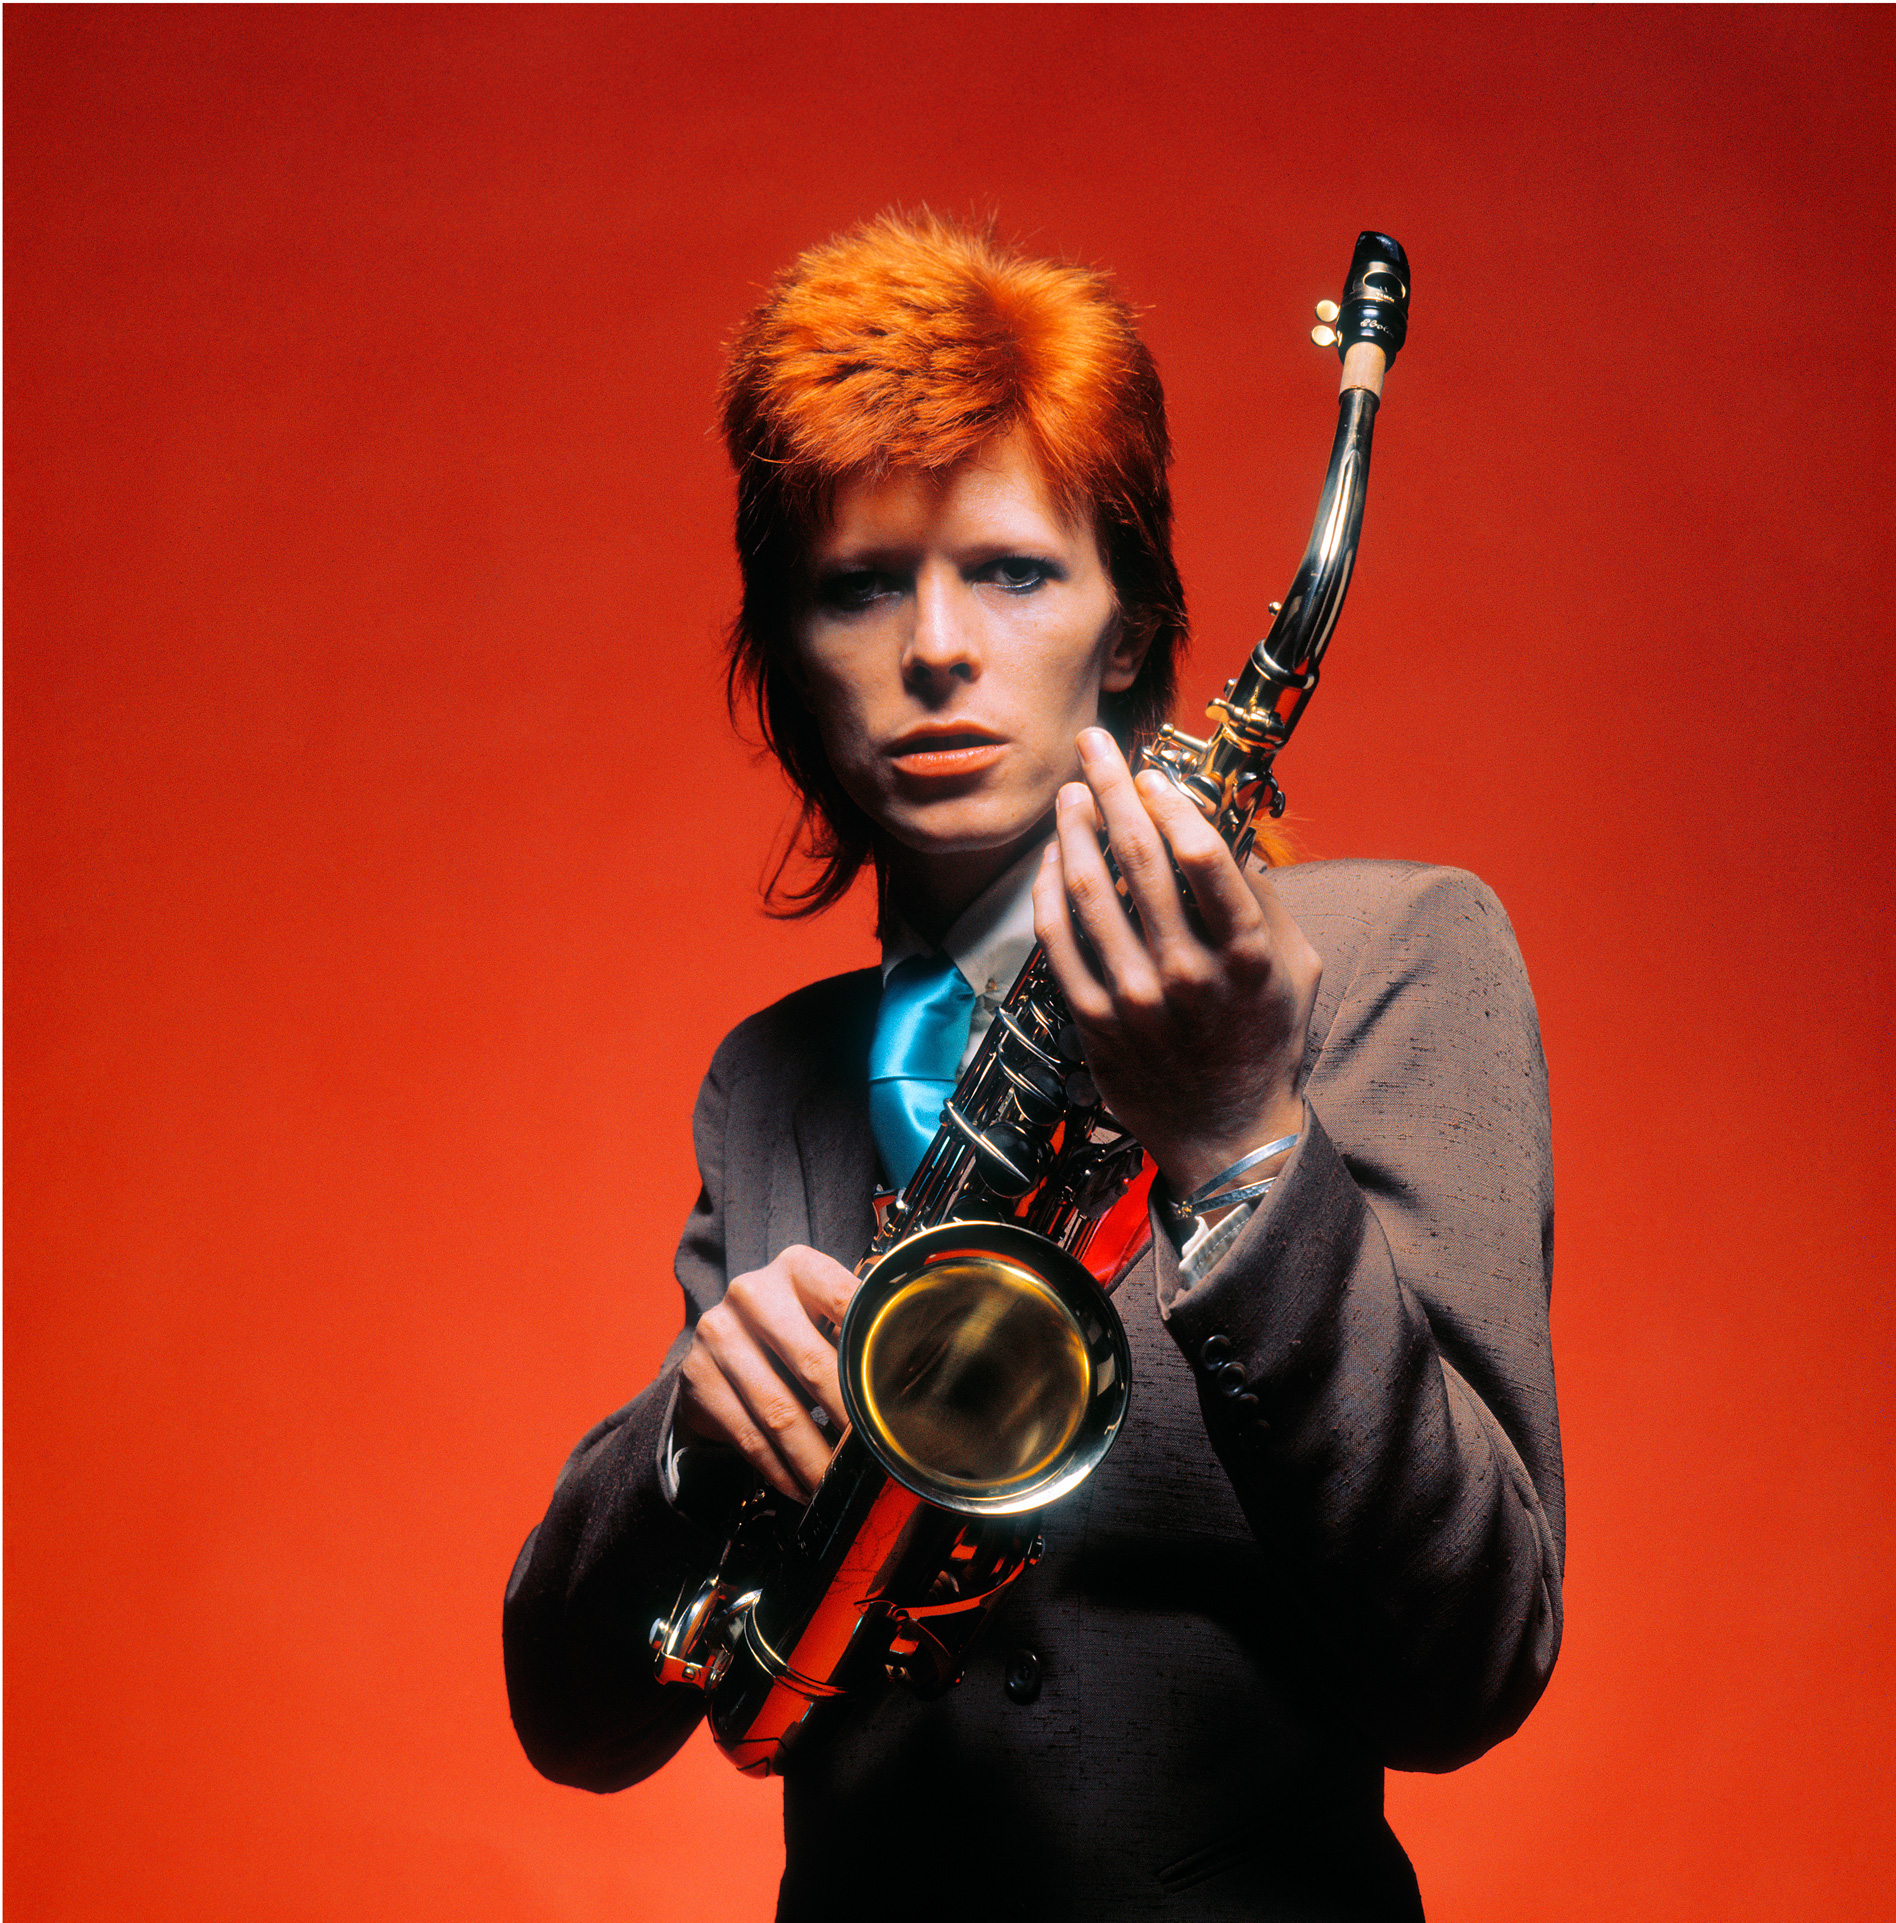 David Bowie, Saxophone,  1973, © Mick Rock / courtesy The Print Room